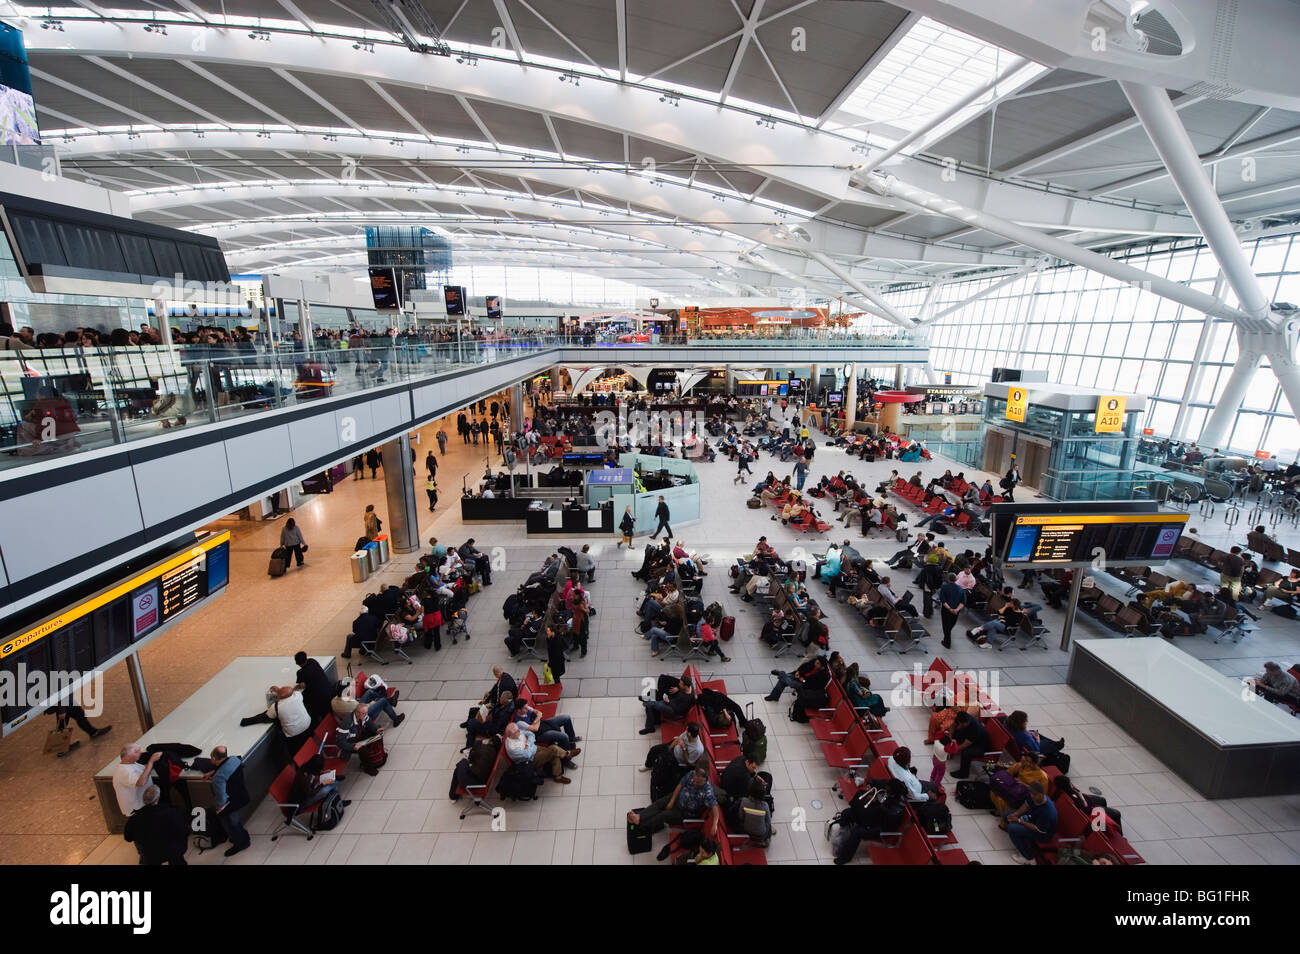 Heathrow Airport, Terminal 5, London, England, United Kingdom, Europe - Stock Image